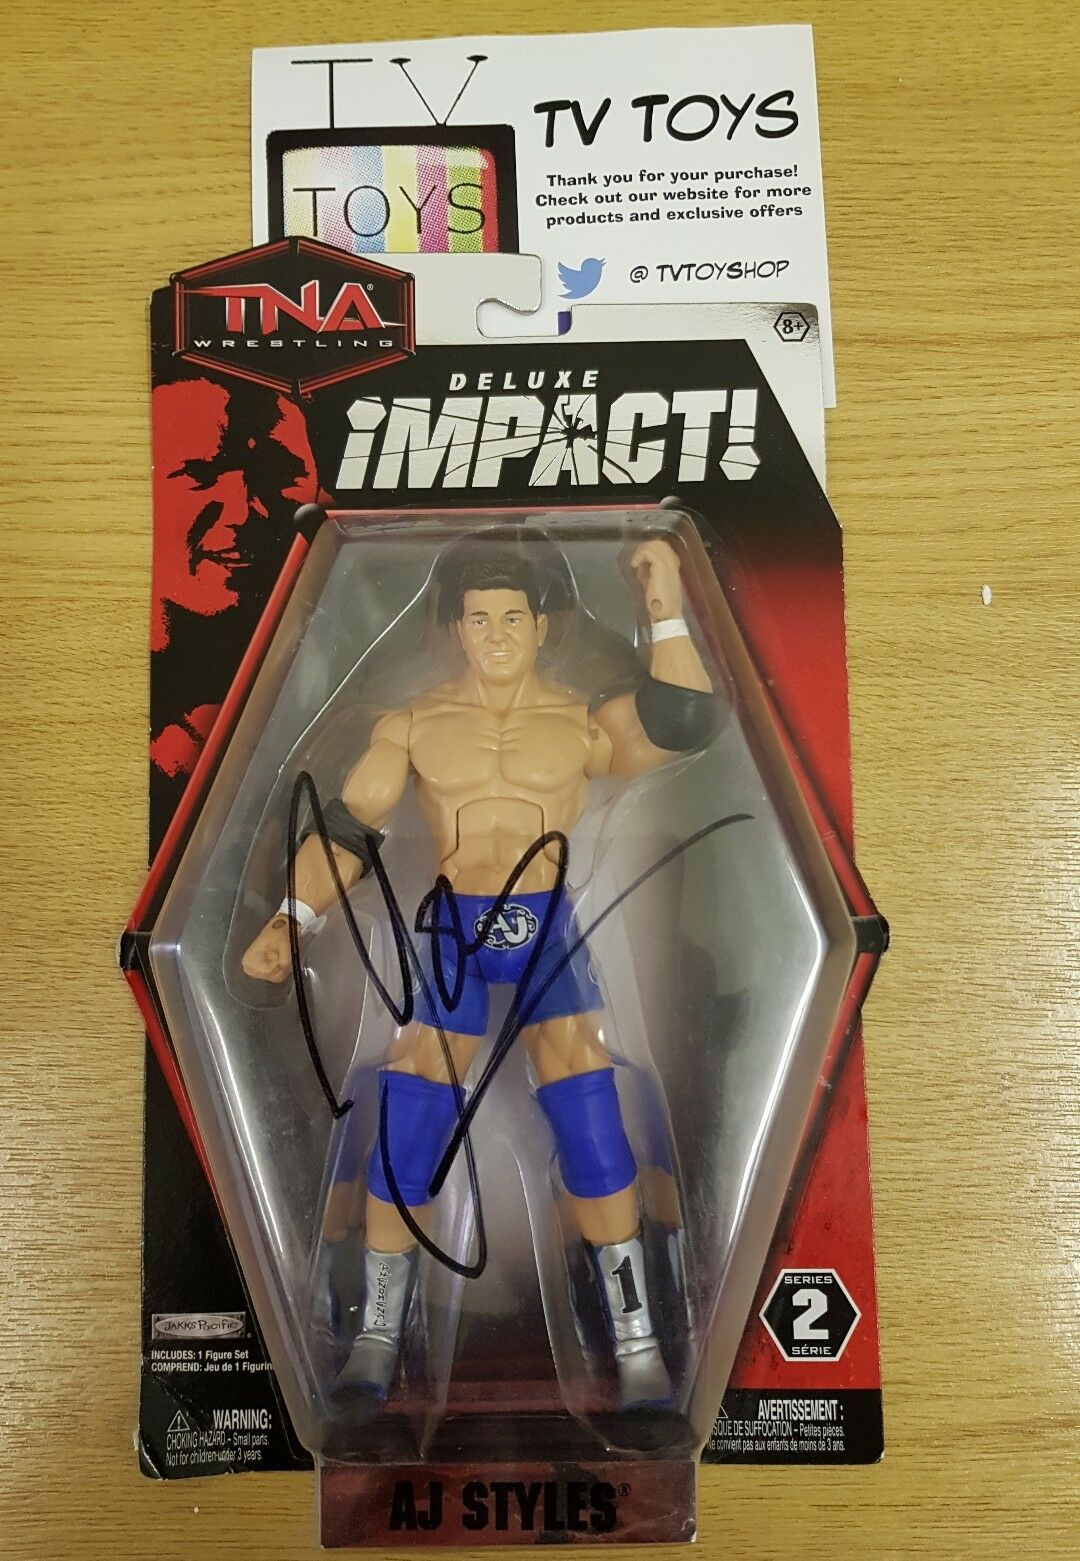 TNA Deluxe impact AJ Styles series 2 Wrestling figure  Signed Cargraph